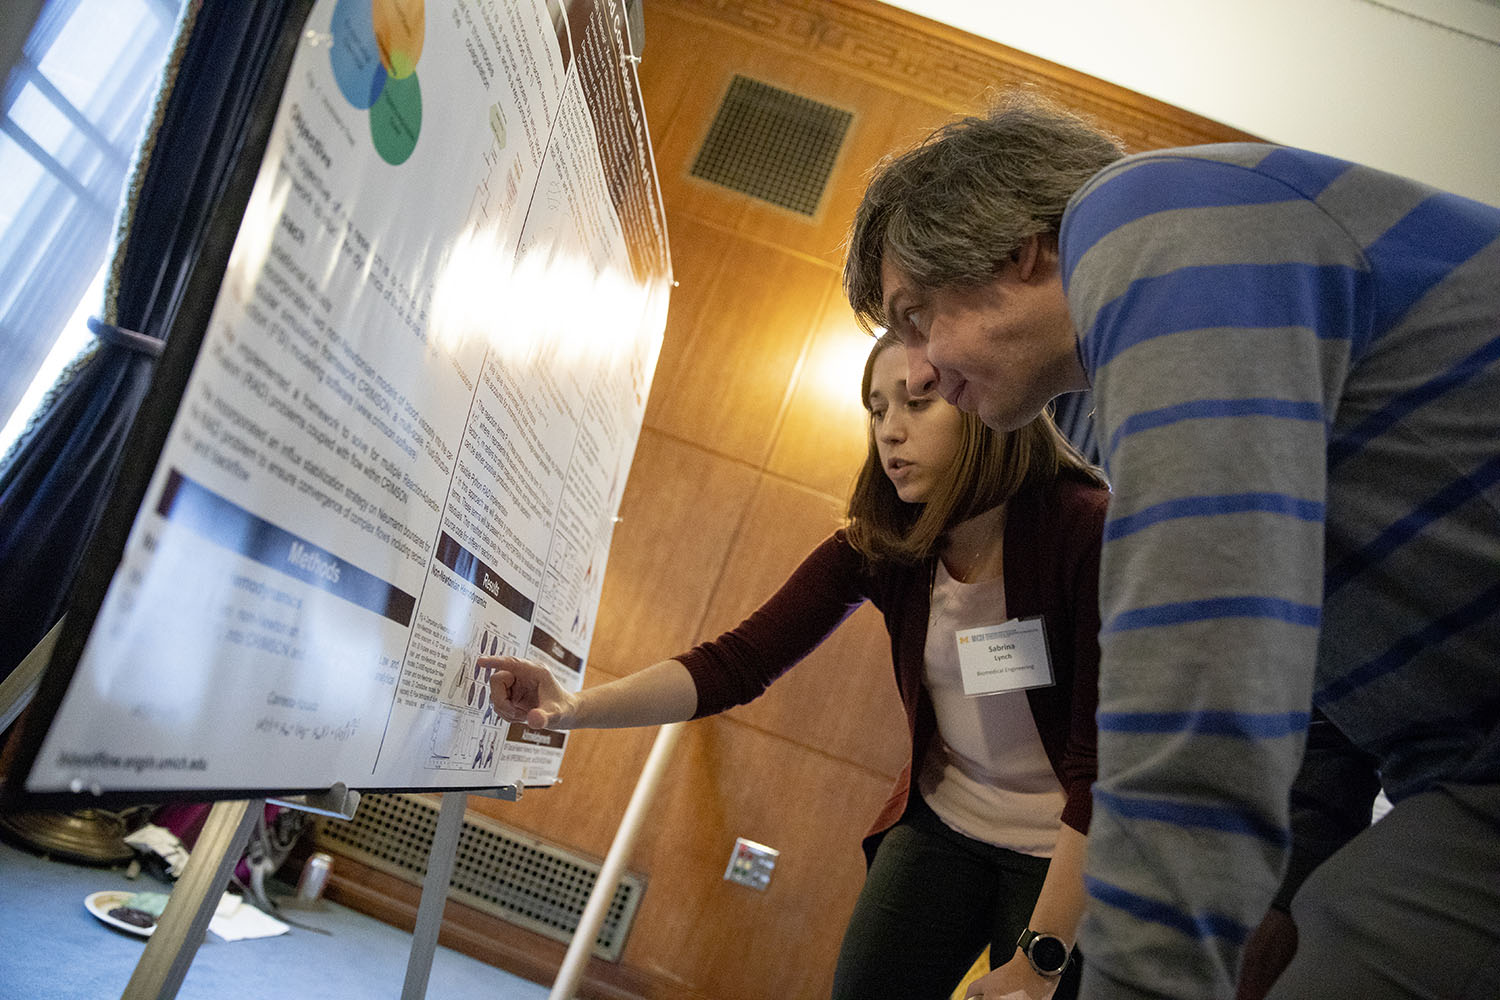 Students at MICDE poster session, 2019